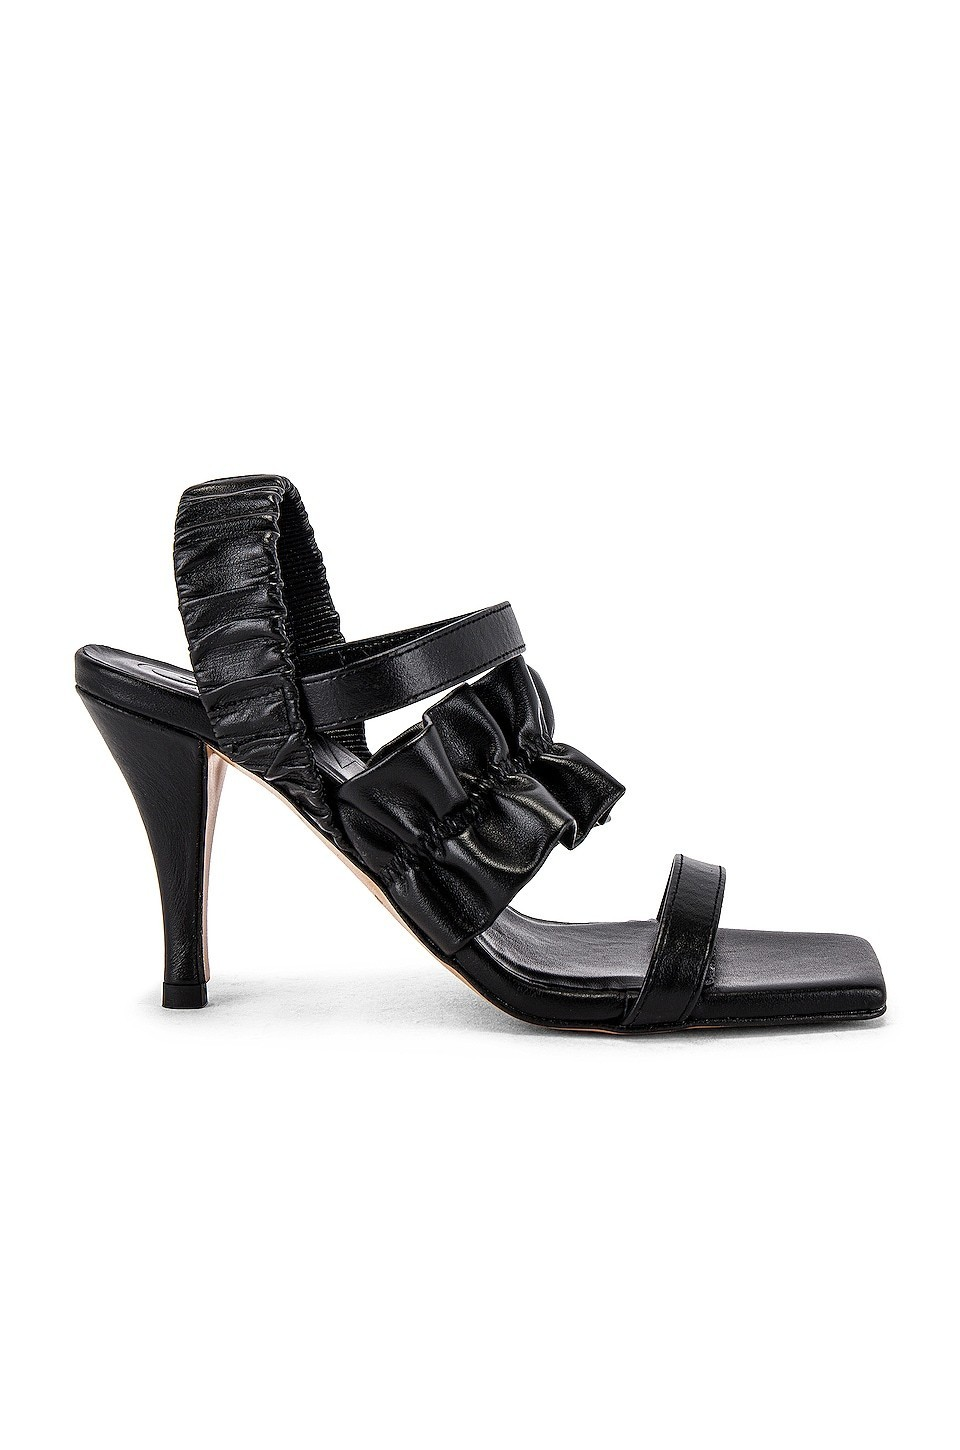 3 Pallets of Sandals, Sneakers, Heels & More by Raye, Steve Madden, Nike & More, 214 Pairs, Ext. Retail $29,707, Cerritos, CA